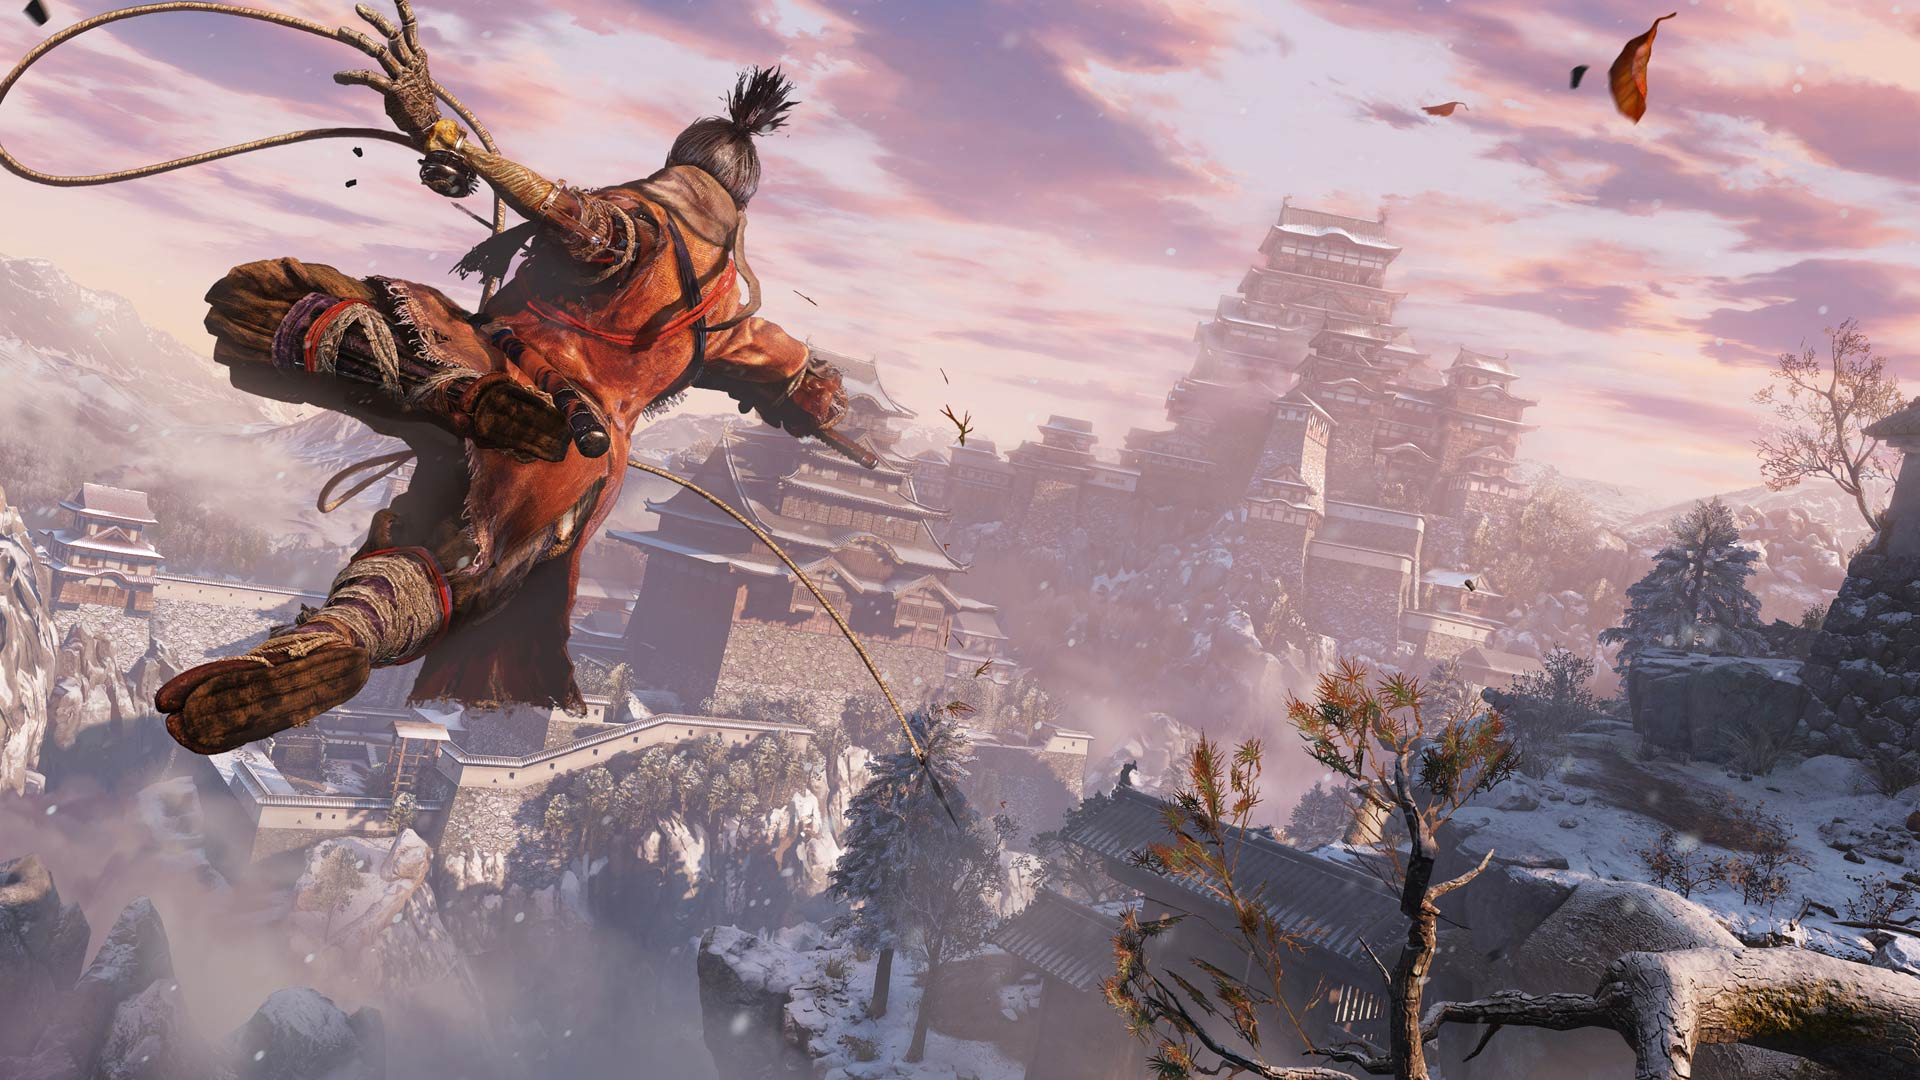 Sekiro Initial Playthrough Review from a Soulsborne Connoisseur